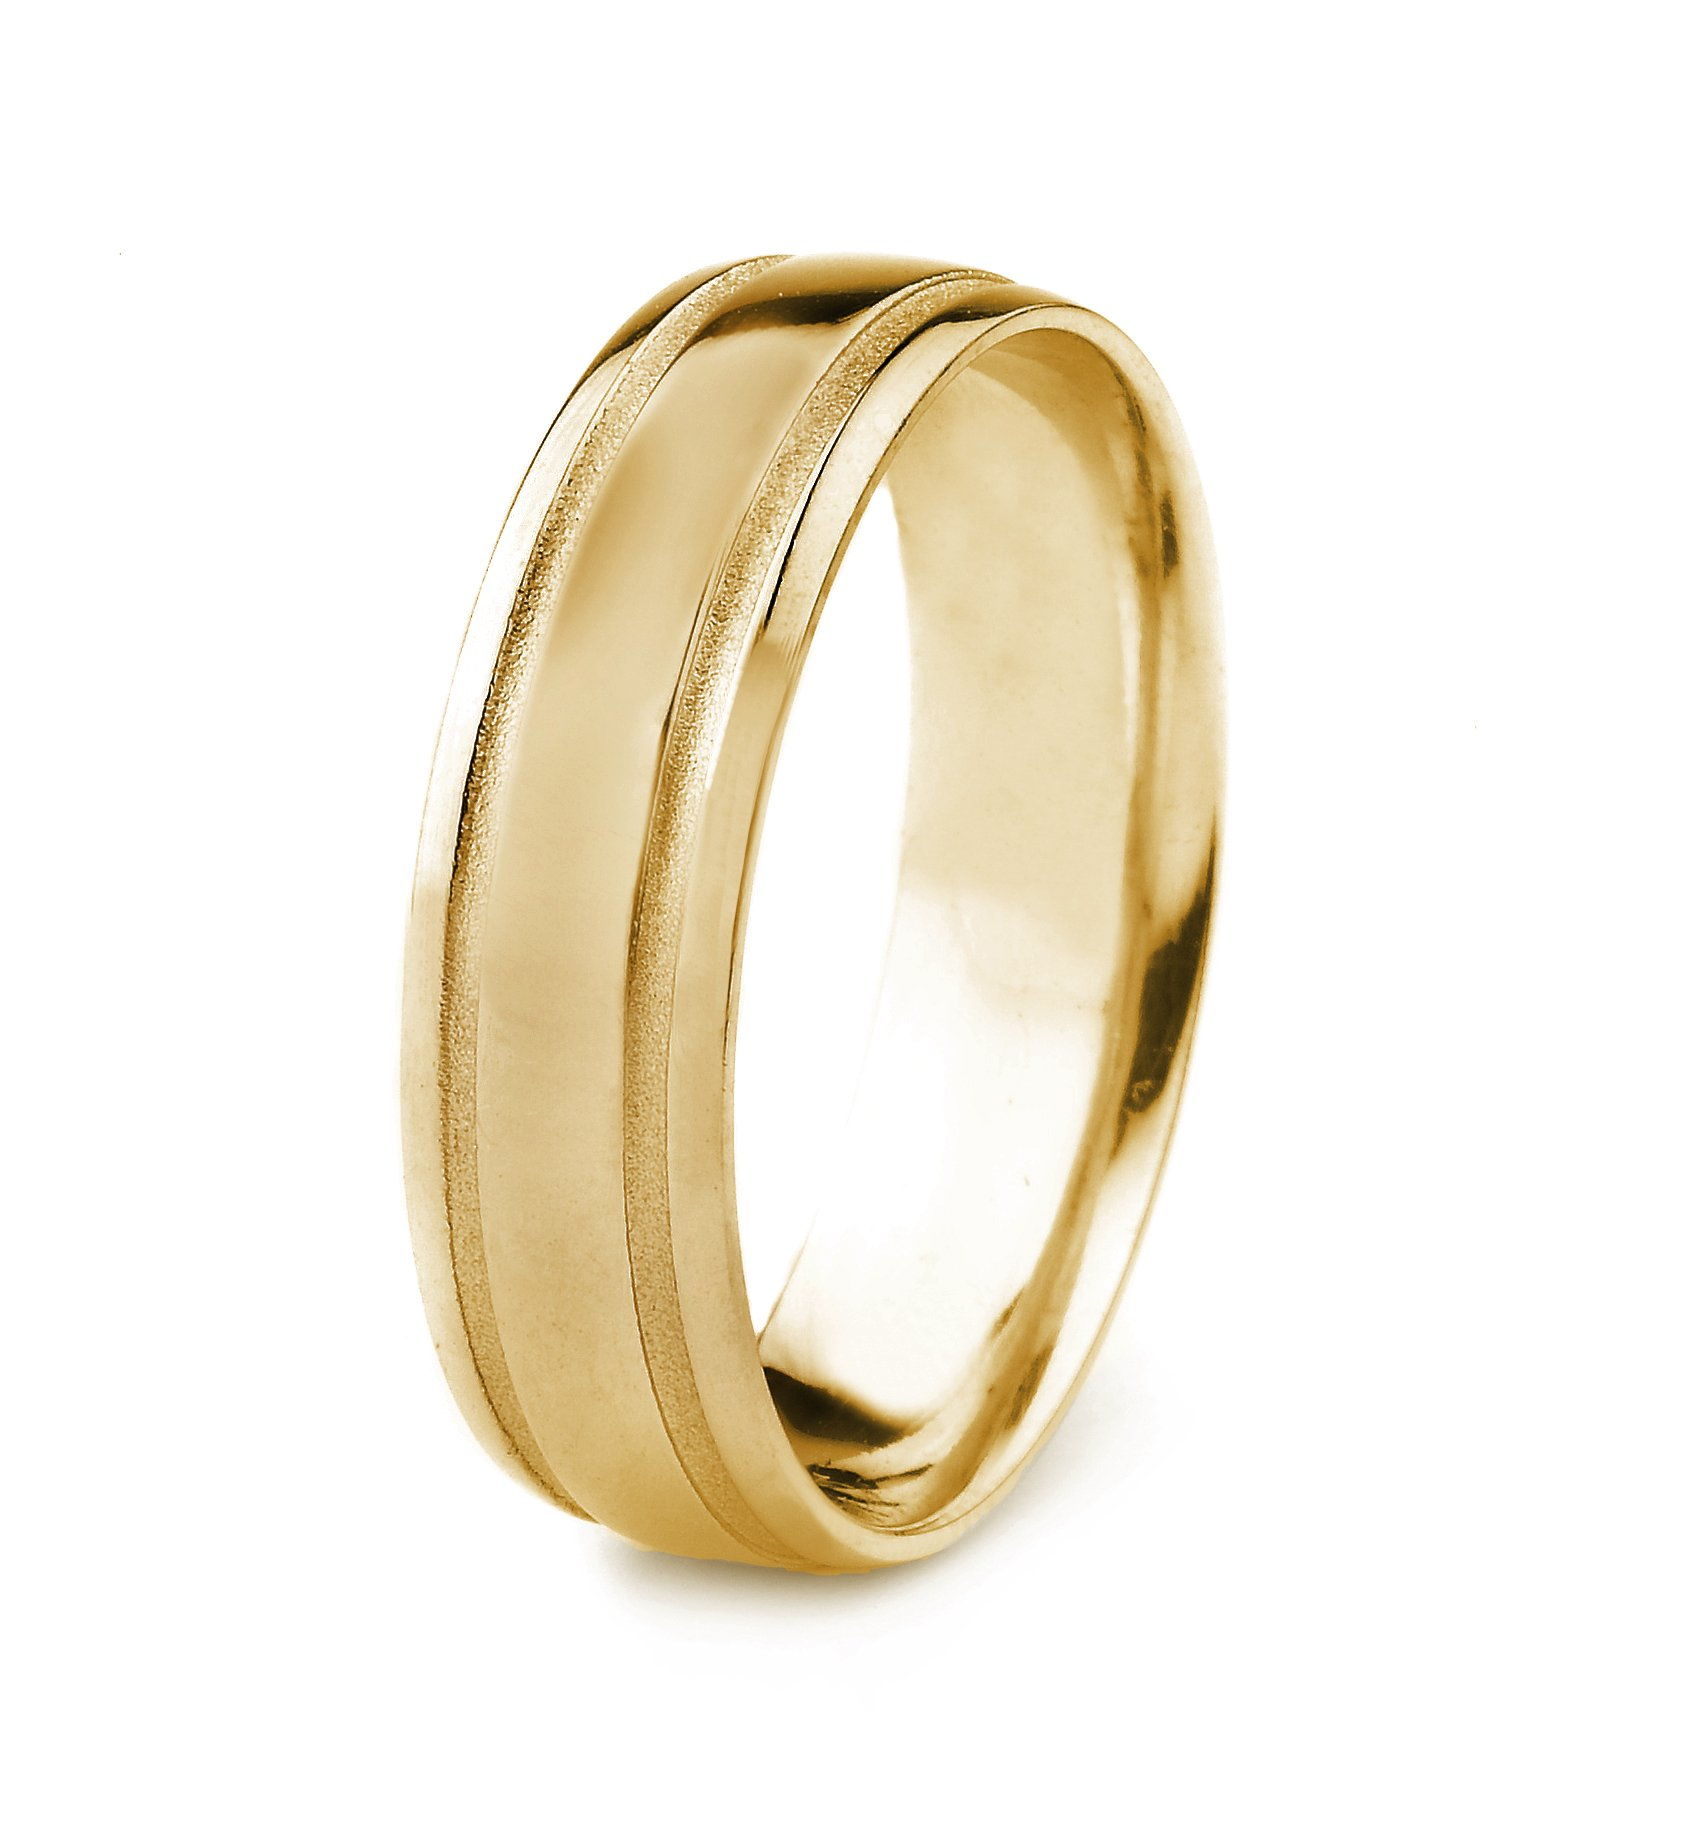 14k Gold Men's Wedding Band with Polished Finish and Parallel Stone Grooves (6mm)